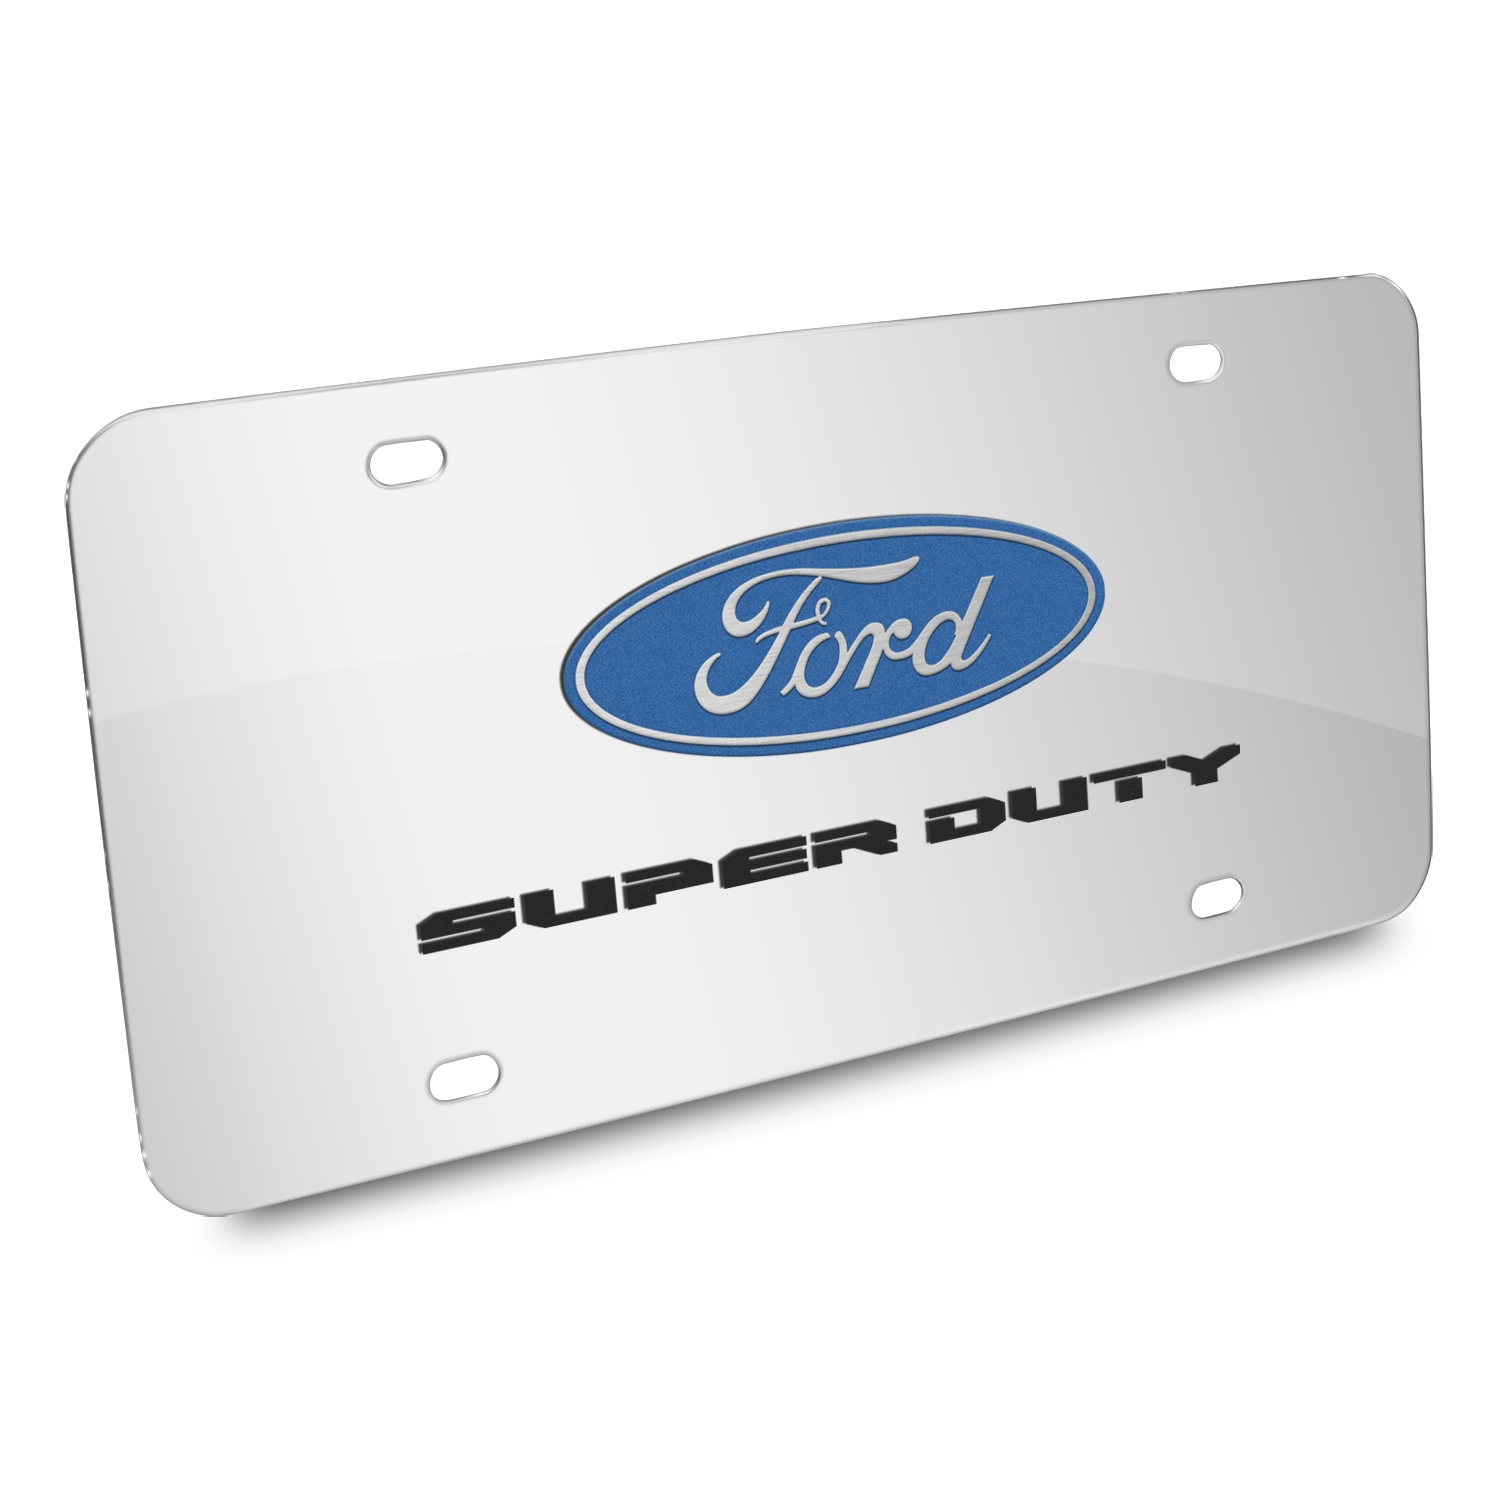 Ford Super-Duty 3D Dual Logo Mirror Chrome Stainless Steel License Plate